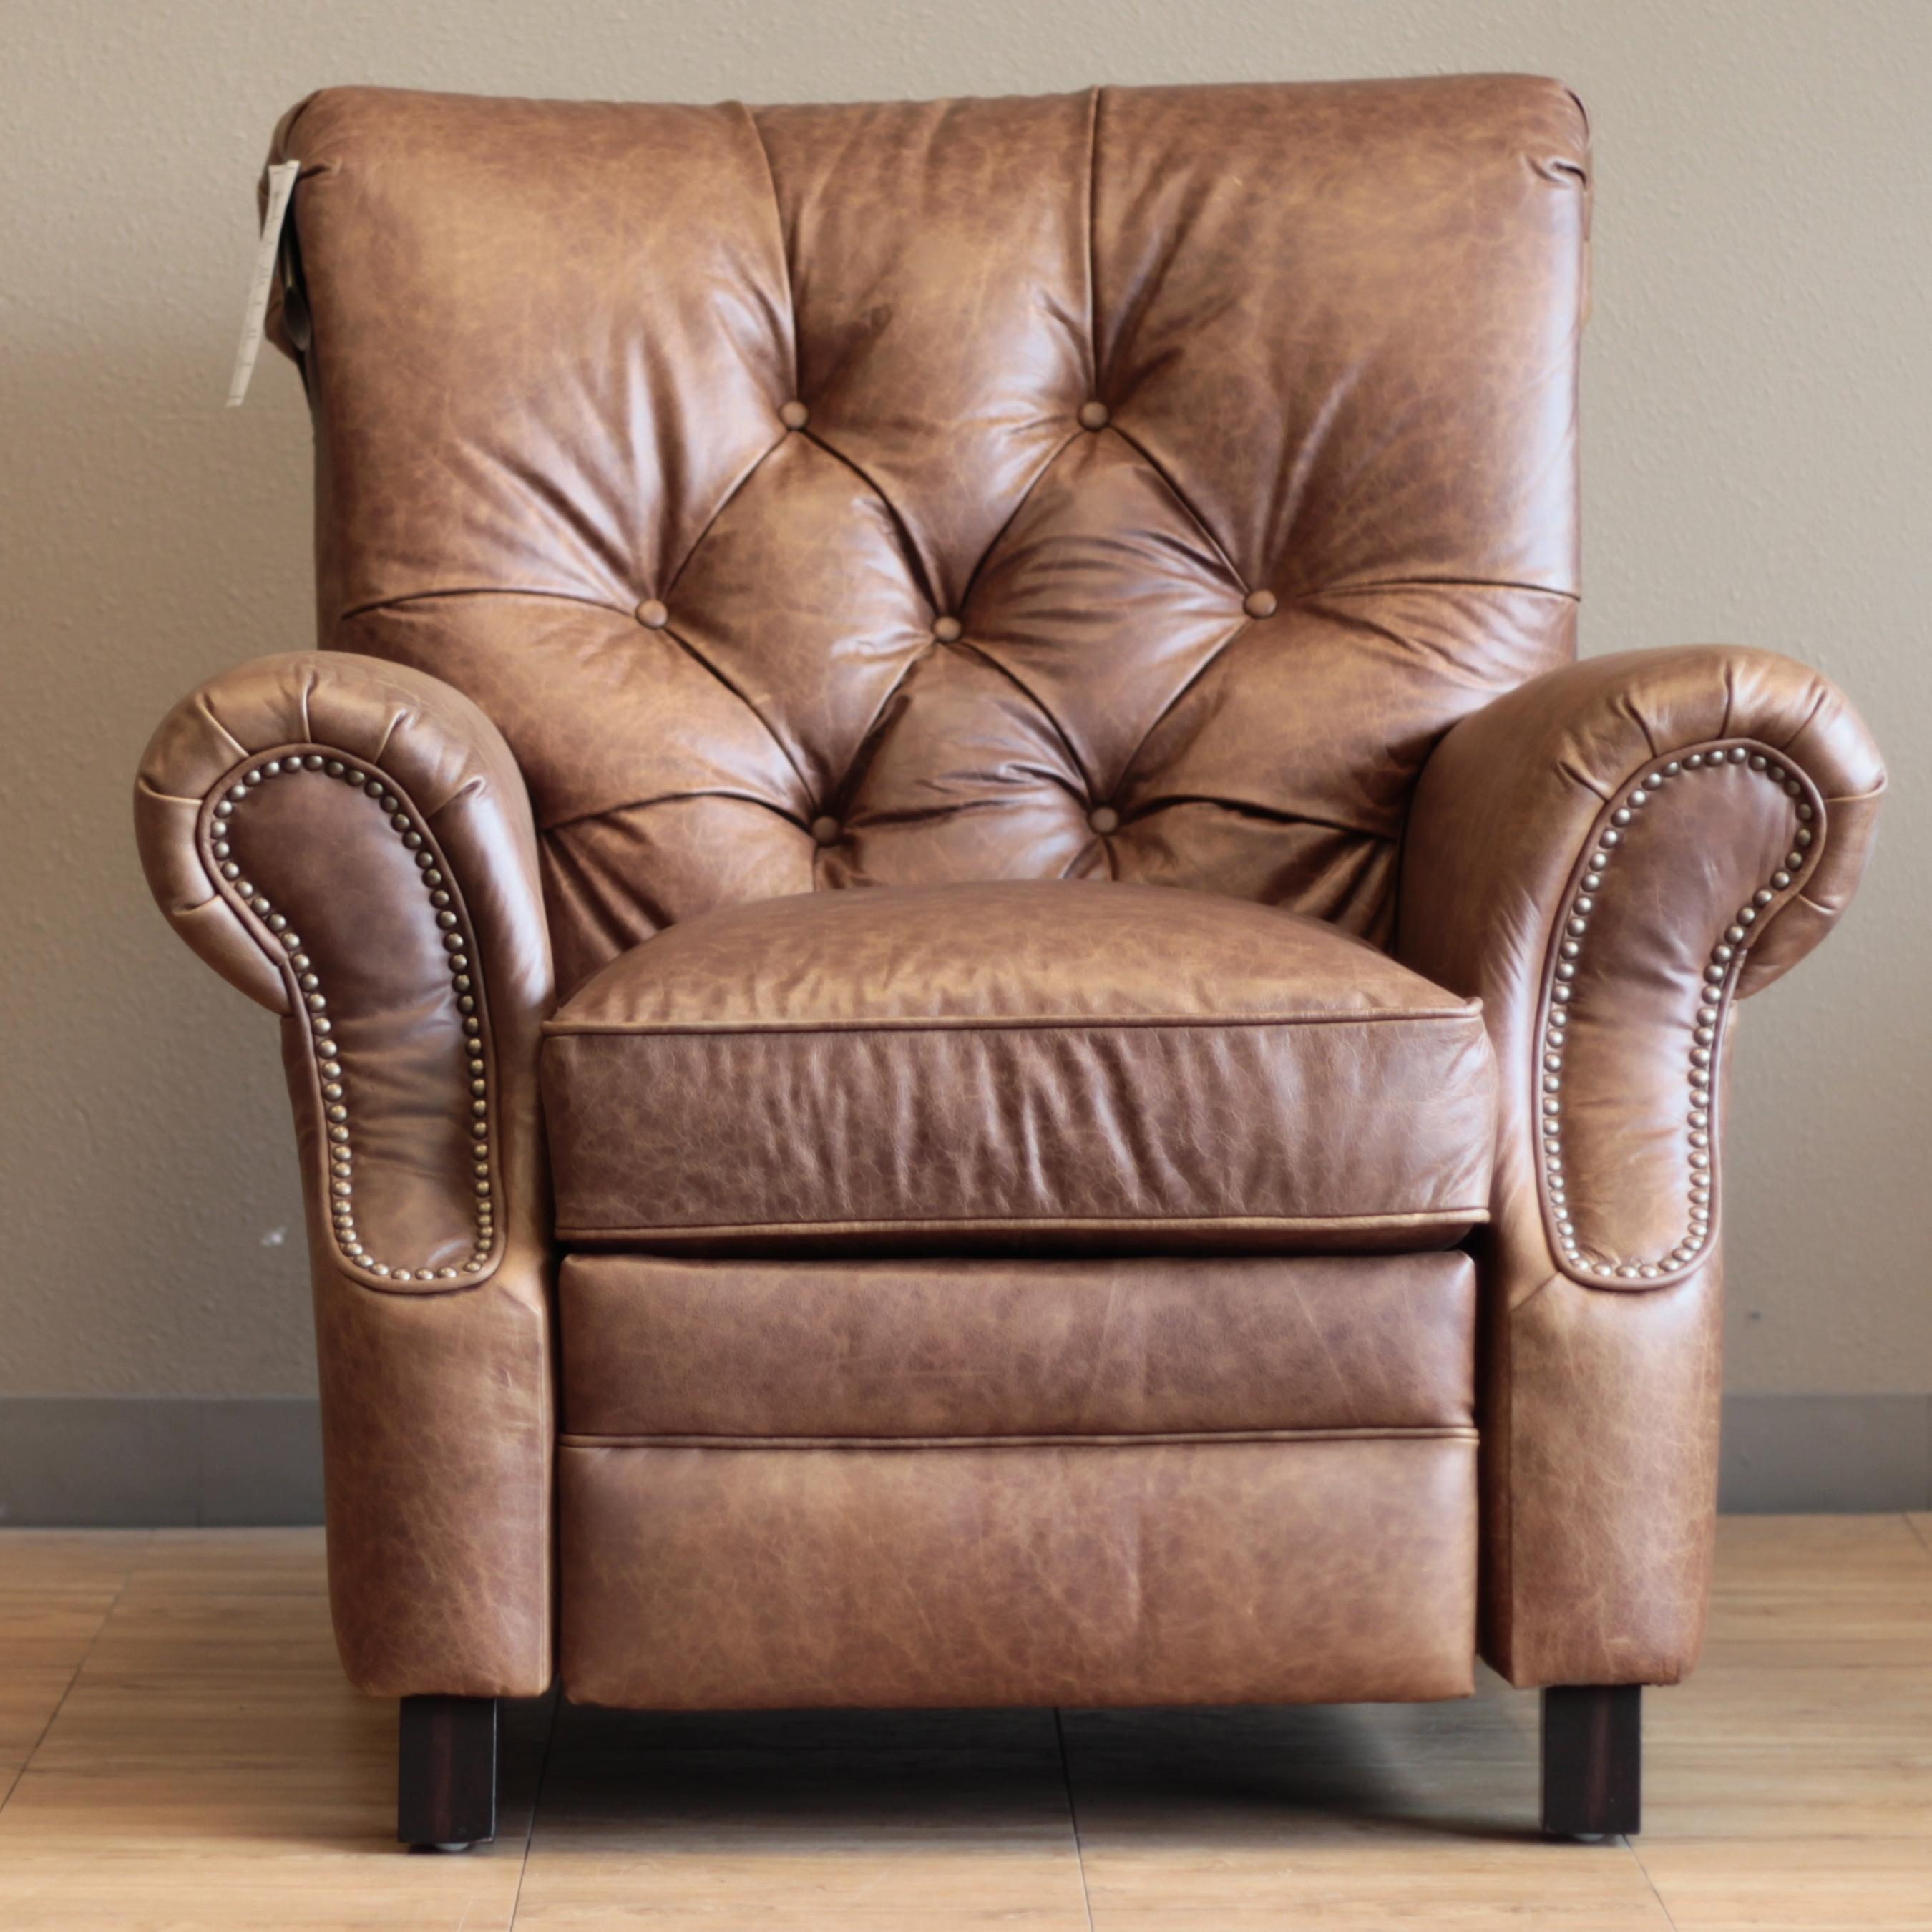 Barcalounger Phoenix Ii Recliner Chair – Leather Recliner Chair Regarding Barcalounger Sofas (Photo 4 of 20)